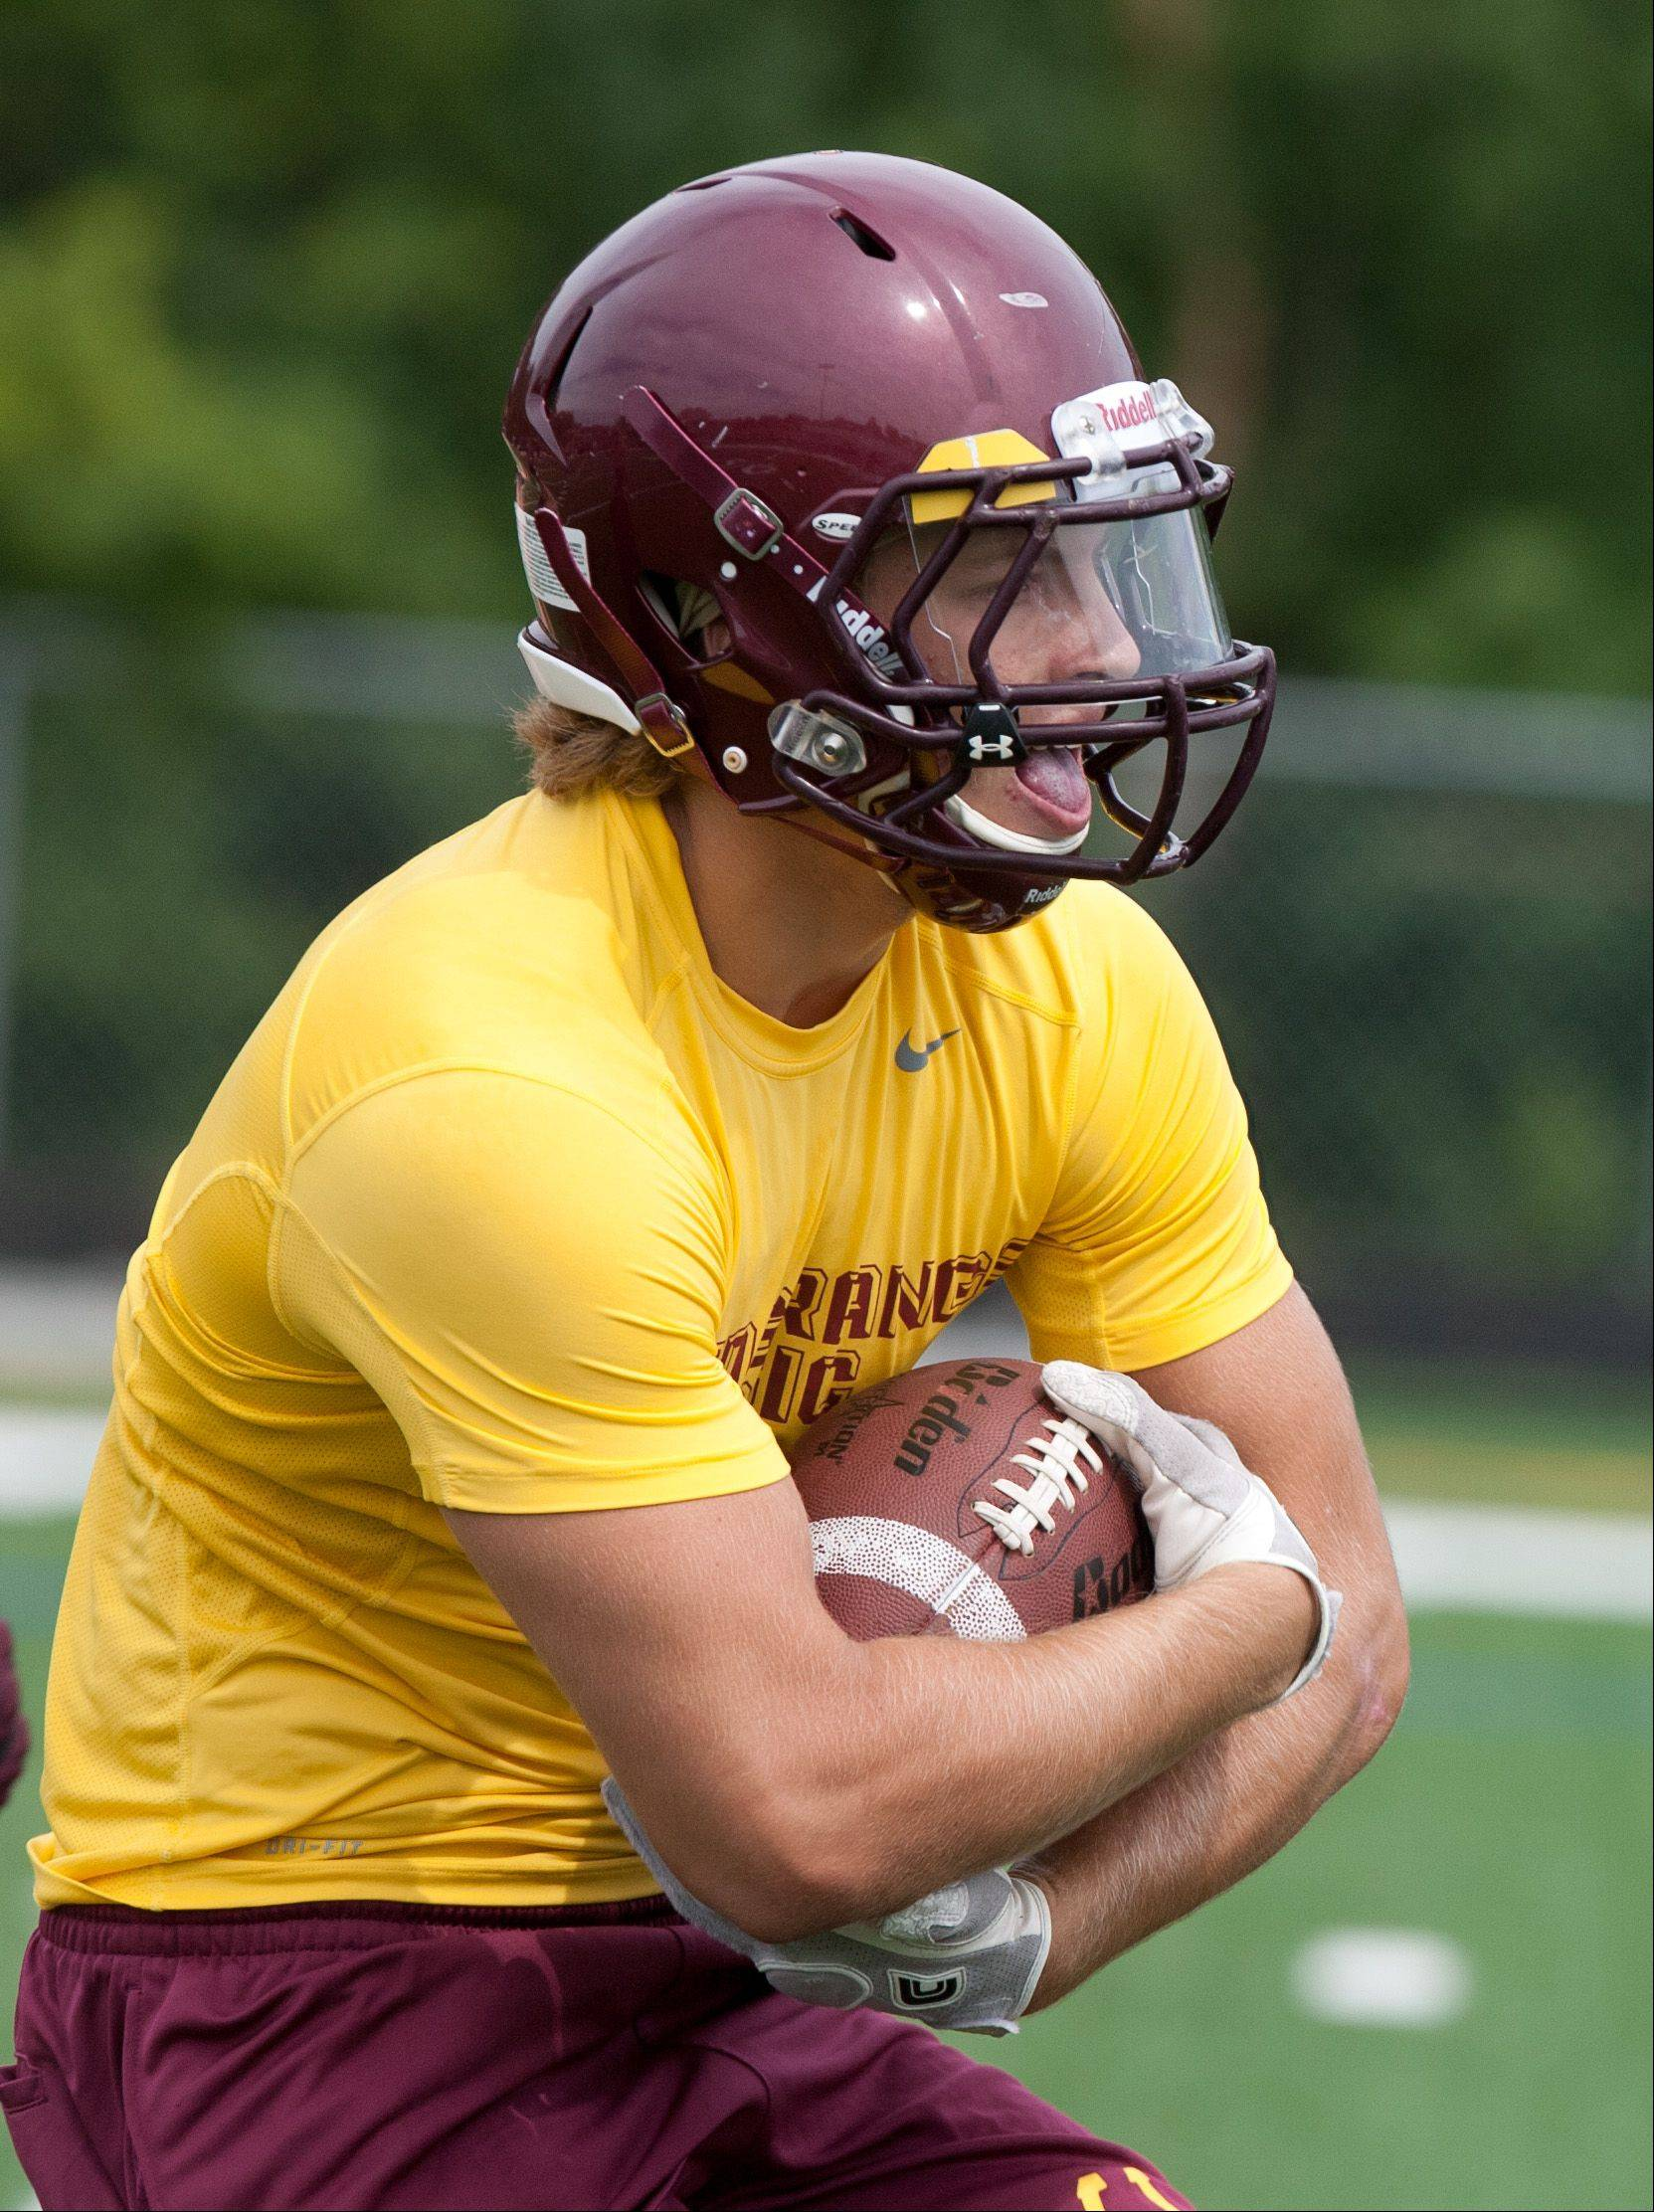 Montini Catholic's Joey Borsellino practices.